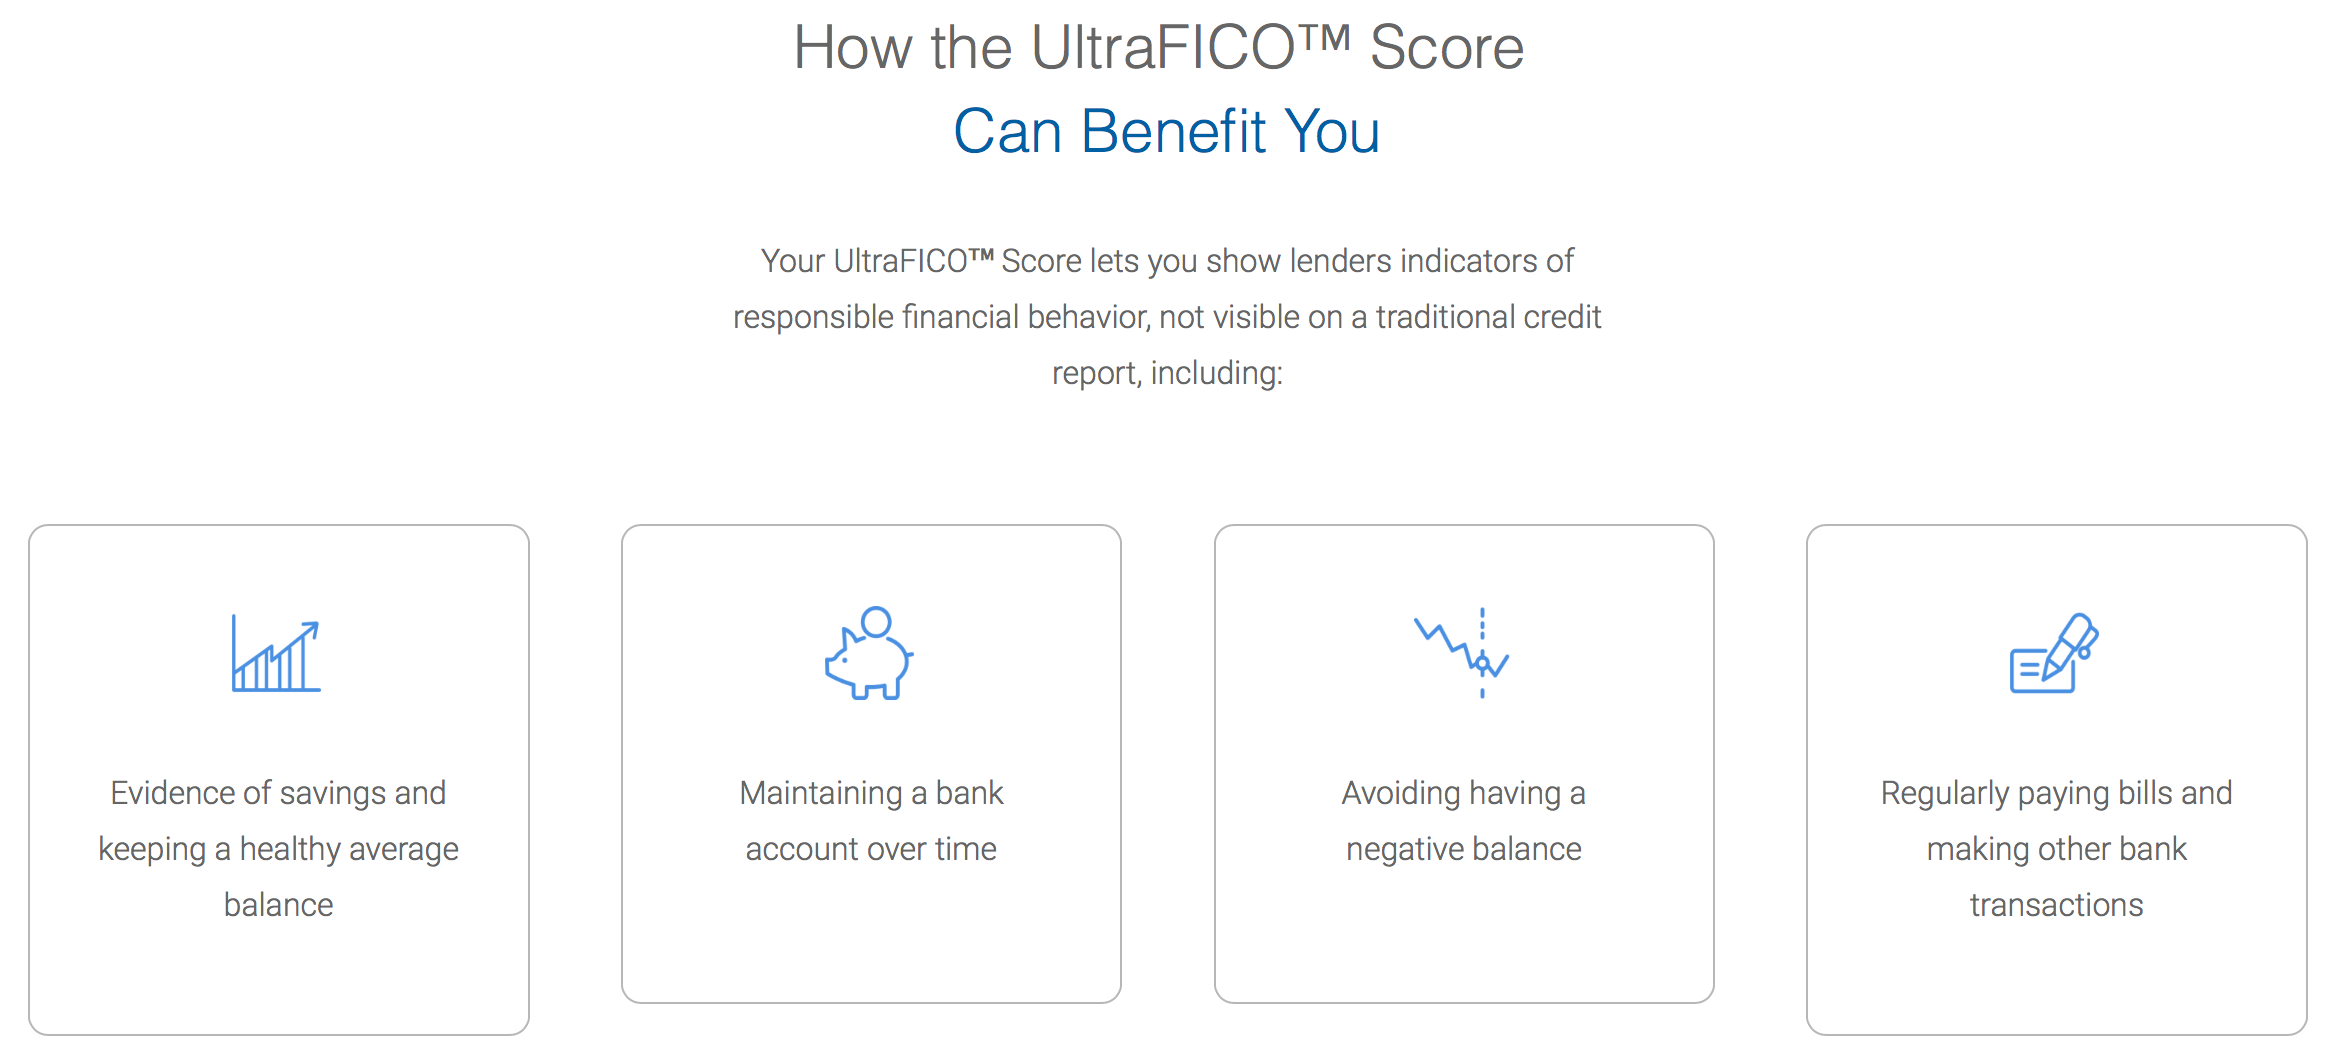 How does UltraFICO work